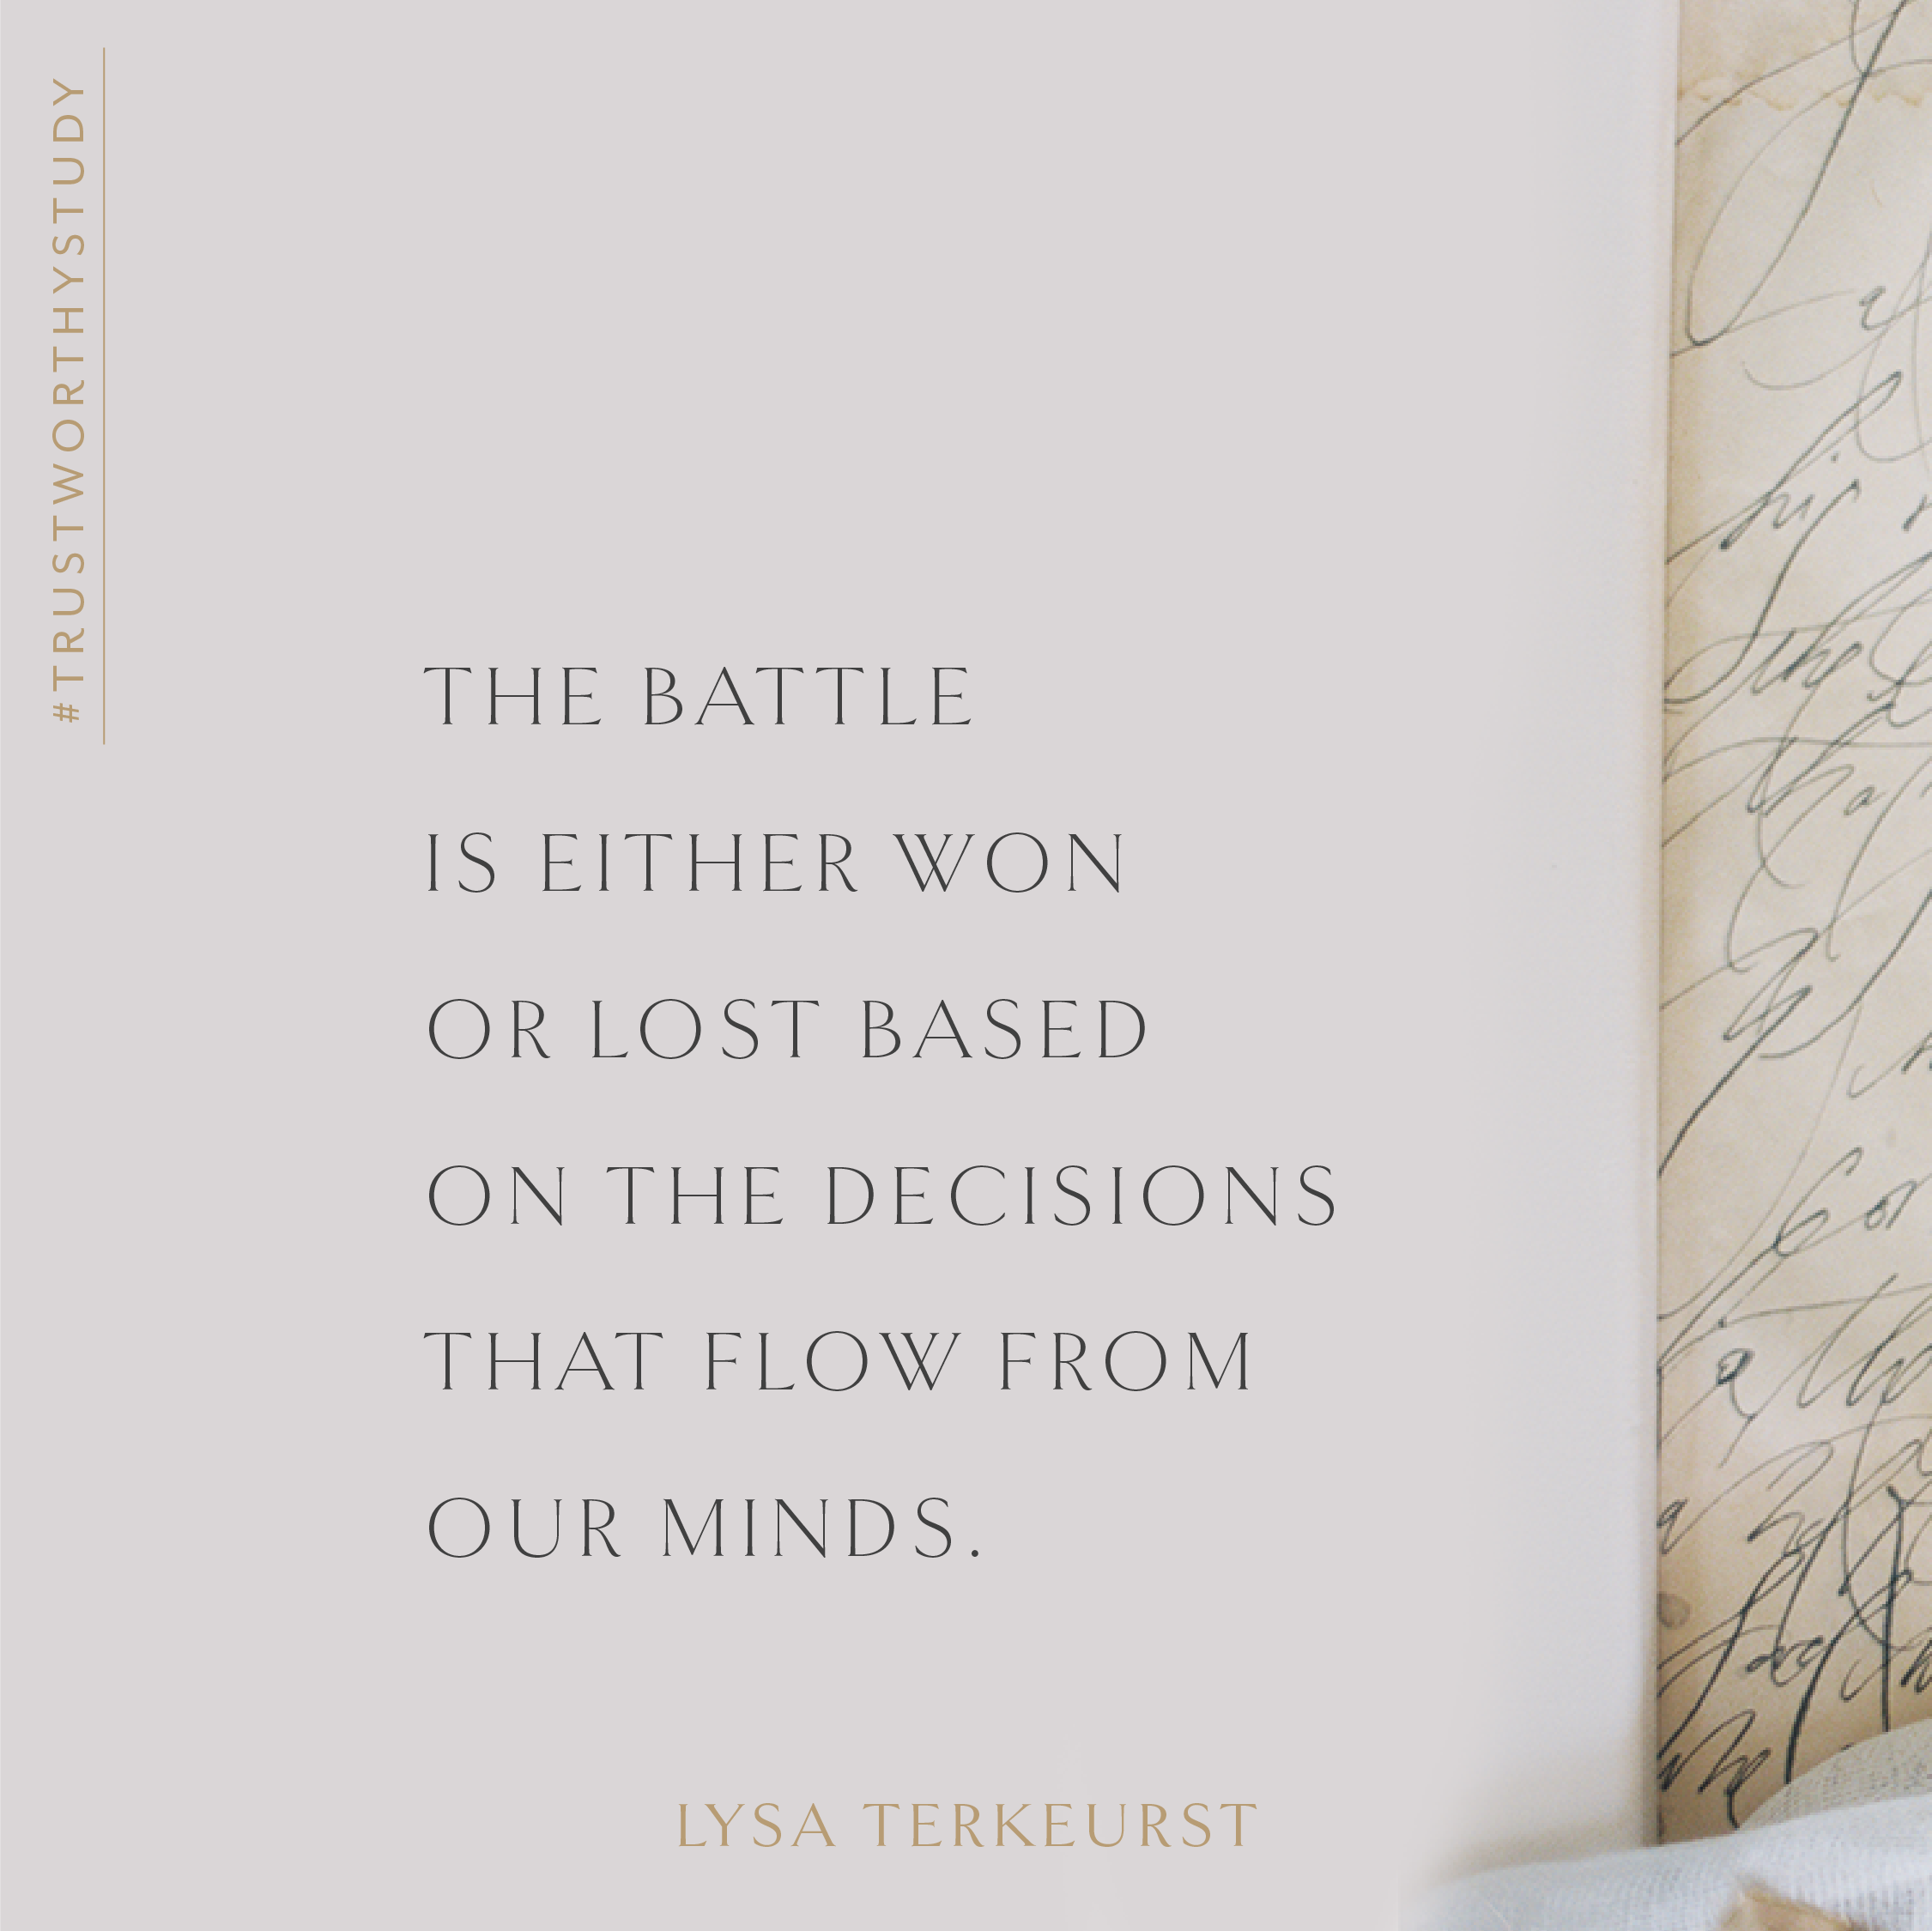 """""""The battle is either won or lost based on the decisions that flow from our minds."""" - Lysa TerKeurst  #TrustworthyStudy 